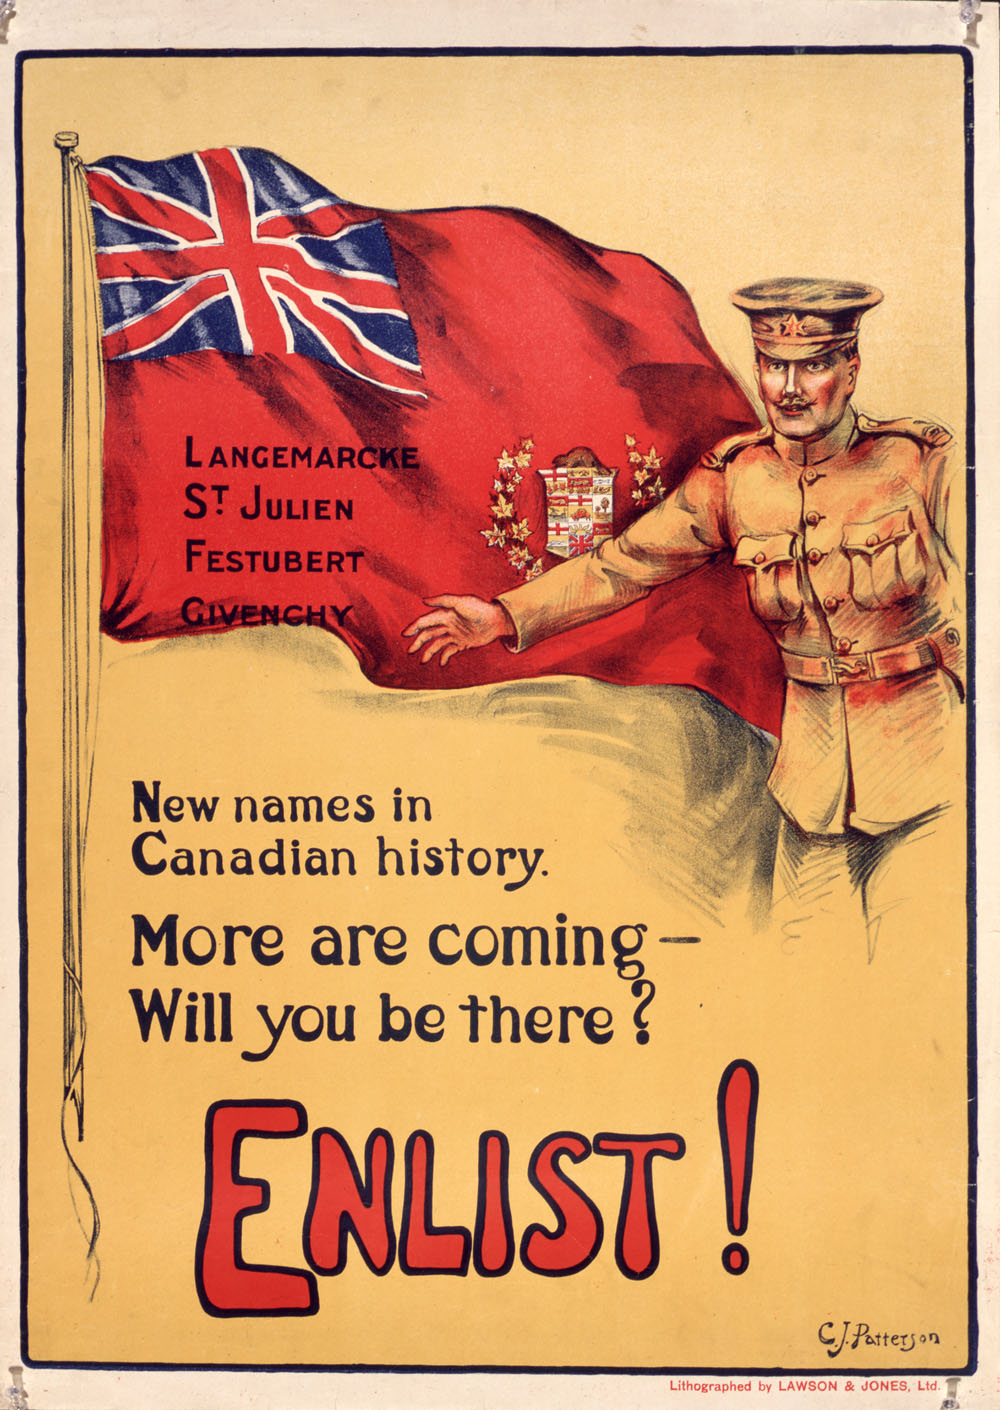 Image of a soldier and the flag with the words Enlist! New Names in Canadian History - More are coming-Will you be there?